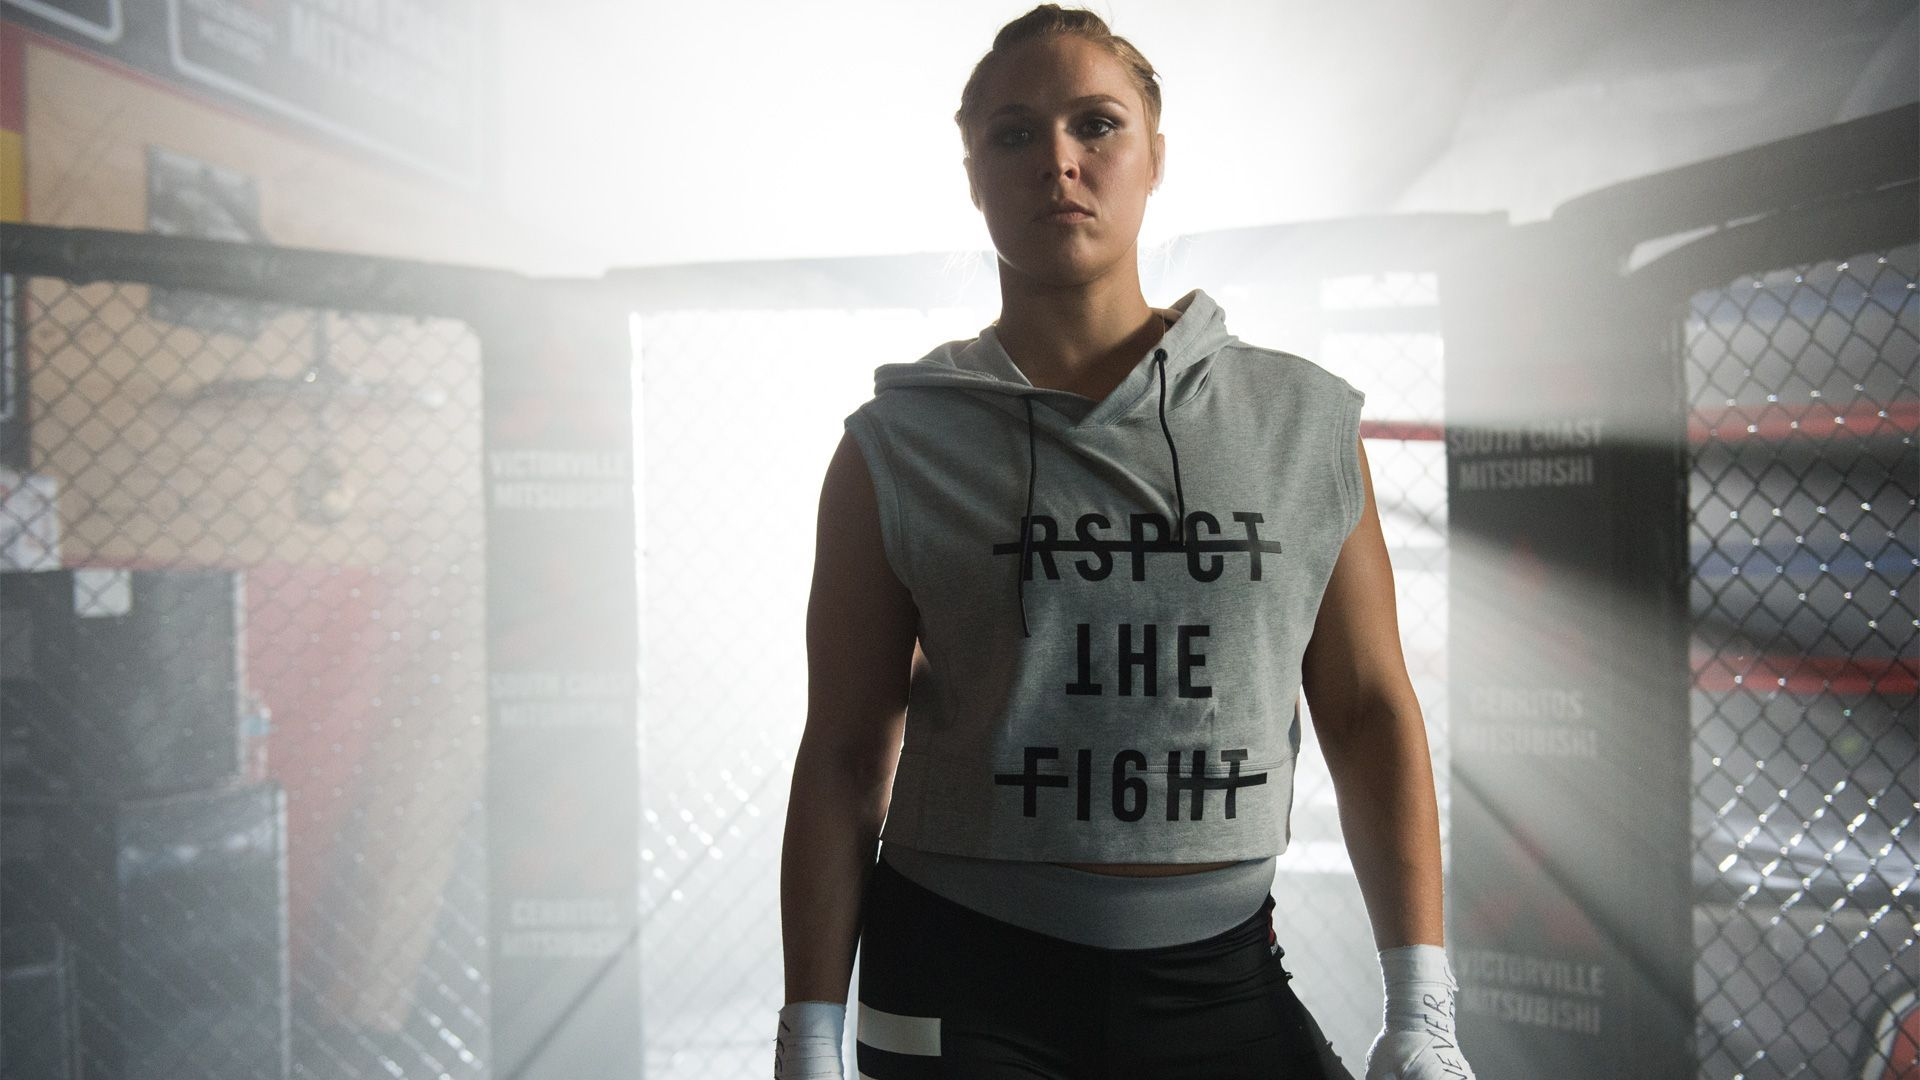 Ronda Rousey Wallpaper Rounda rousey, hd wallpaper and wallpapers android on pinterest